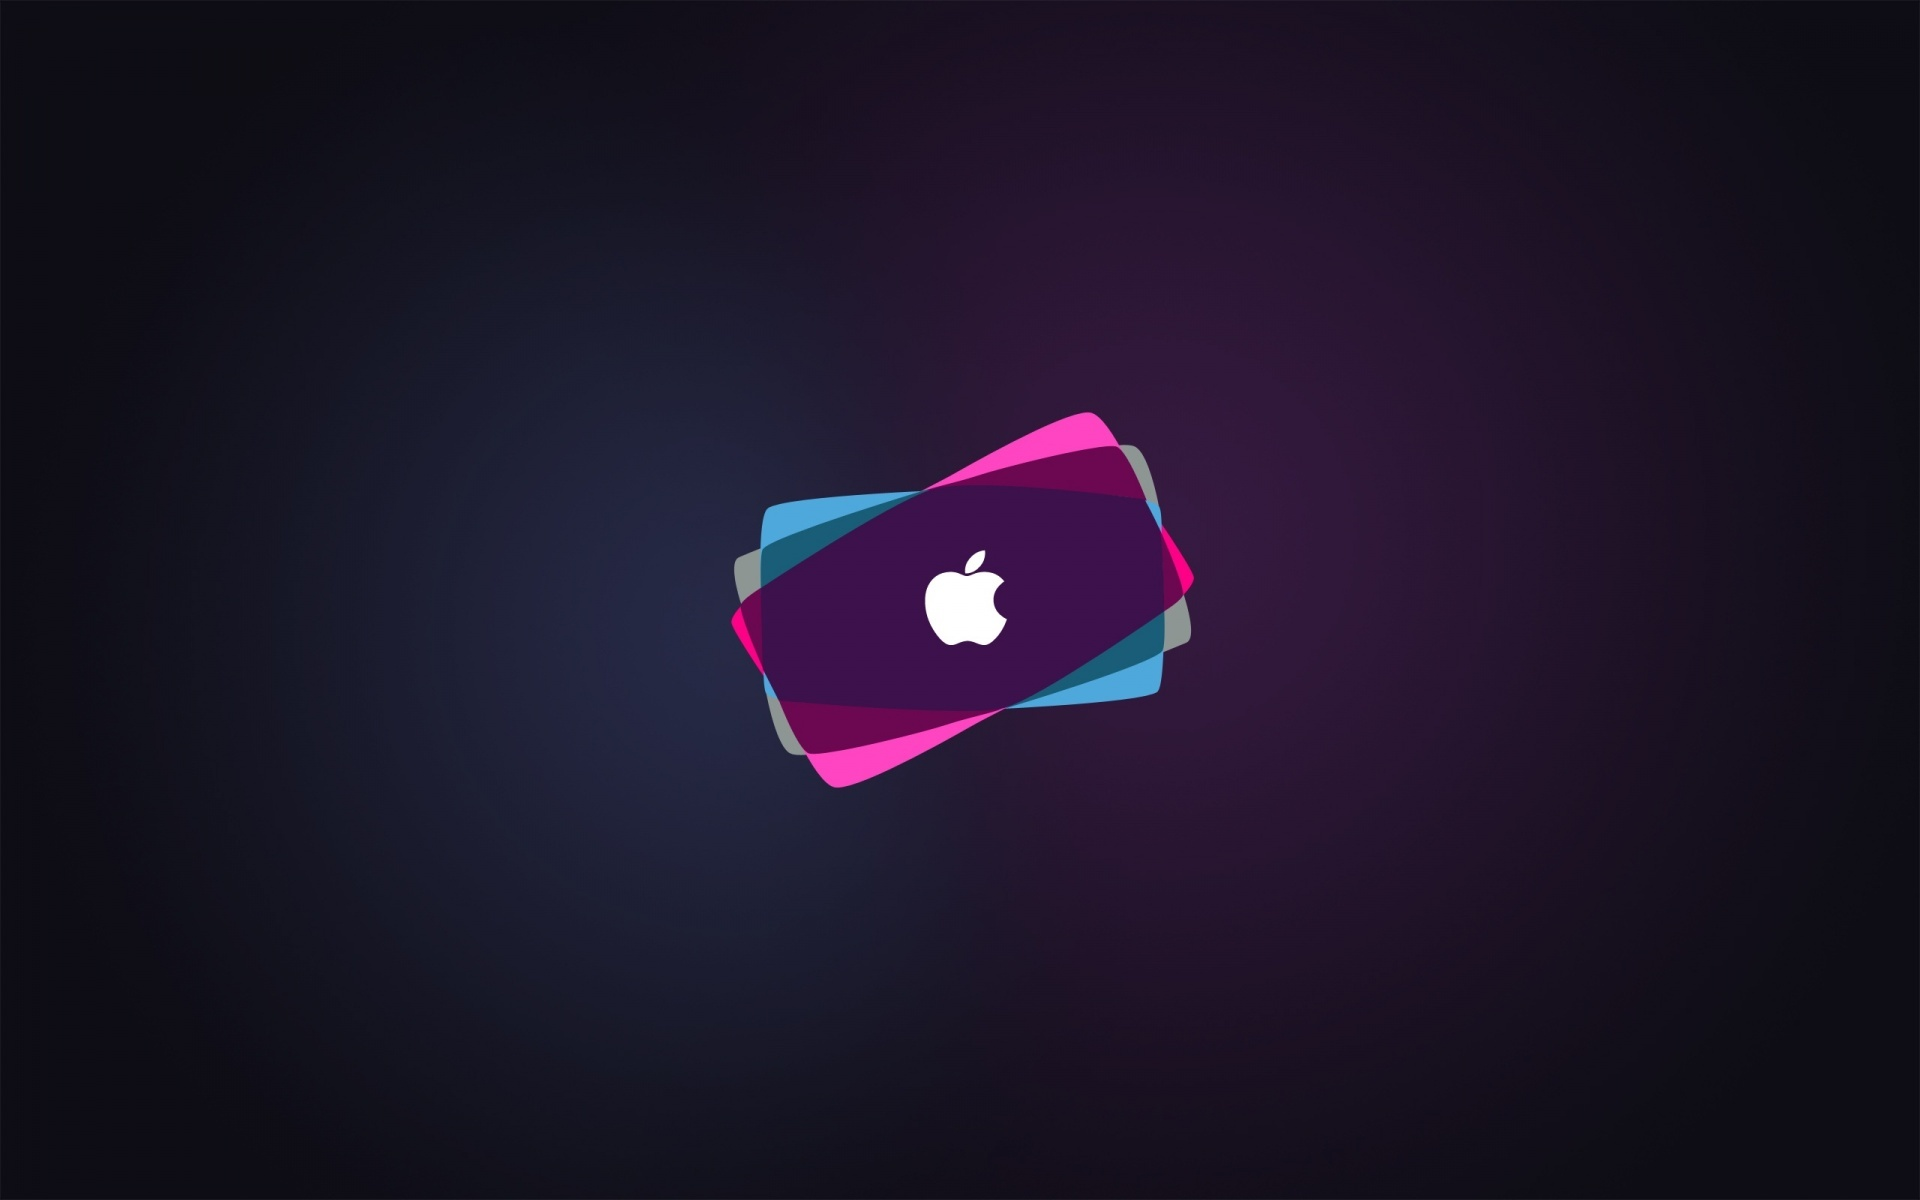 Technology - Apple Wallpaper